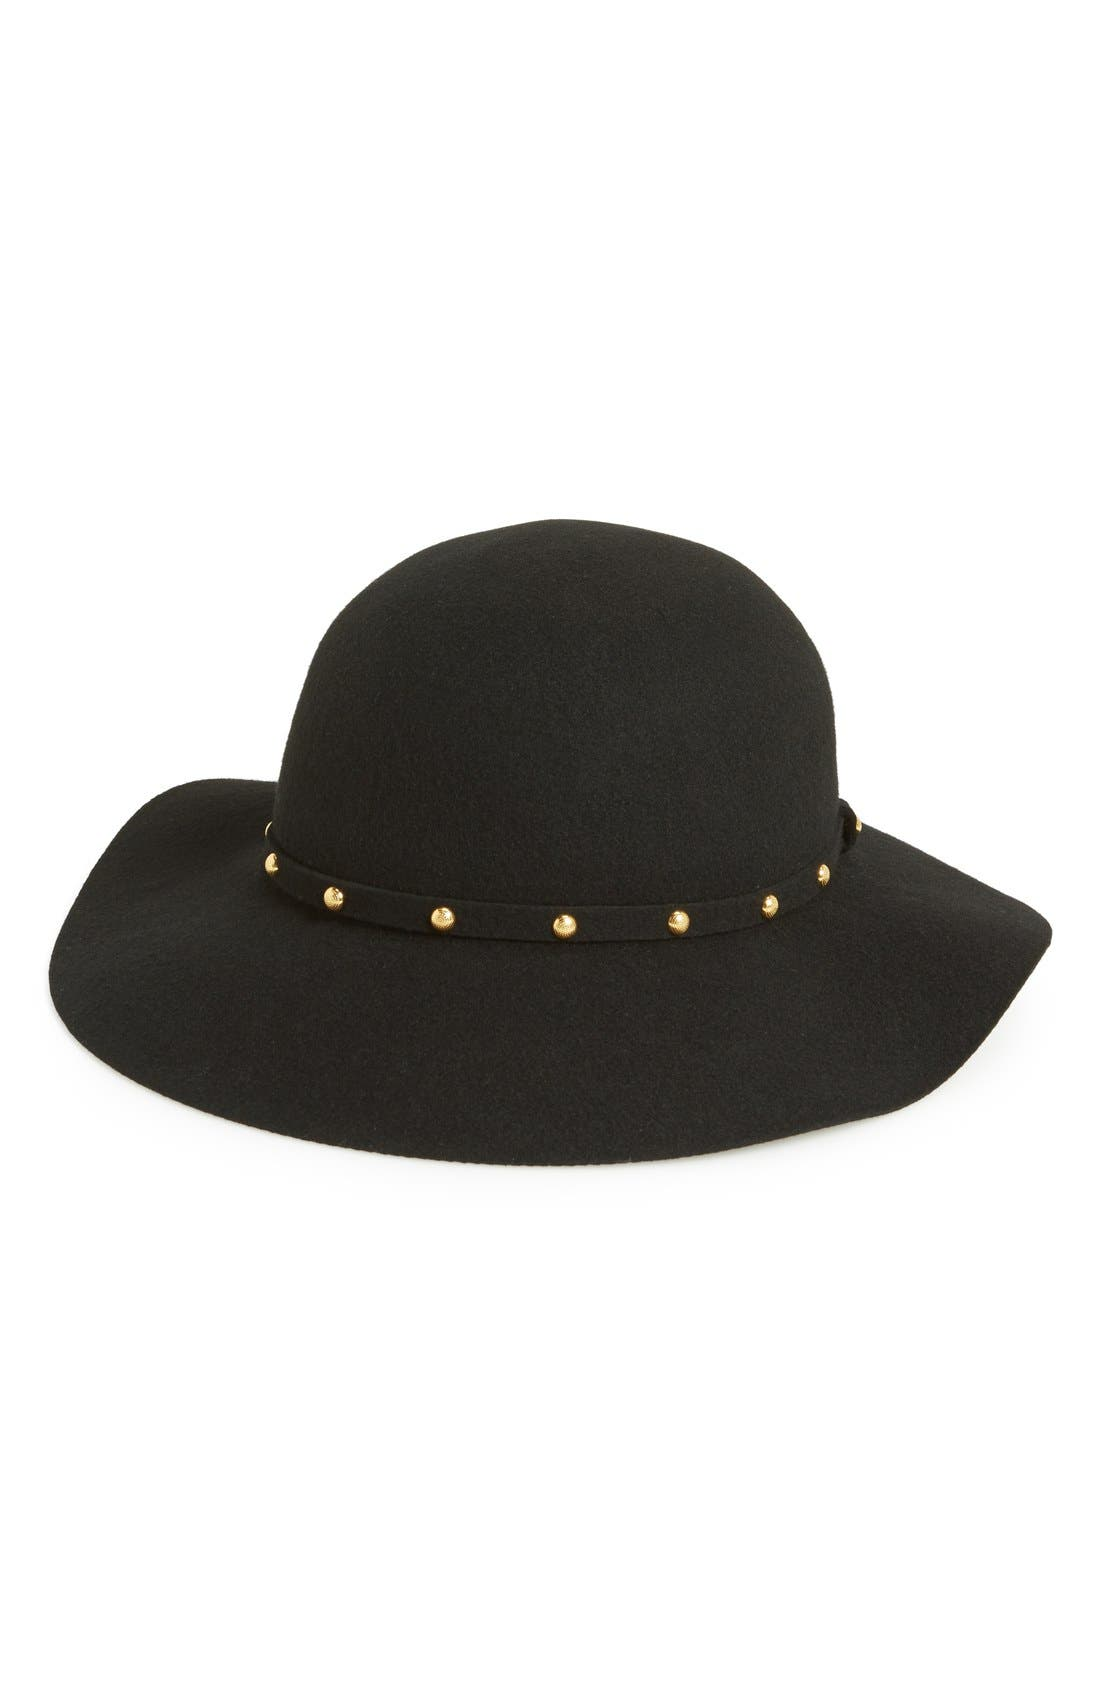 Alternate Image 1 Selected - San Diego Hat Floppy Wool Felt Hat with Studded Band